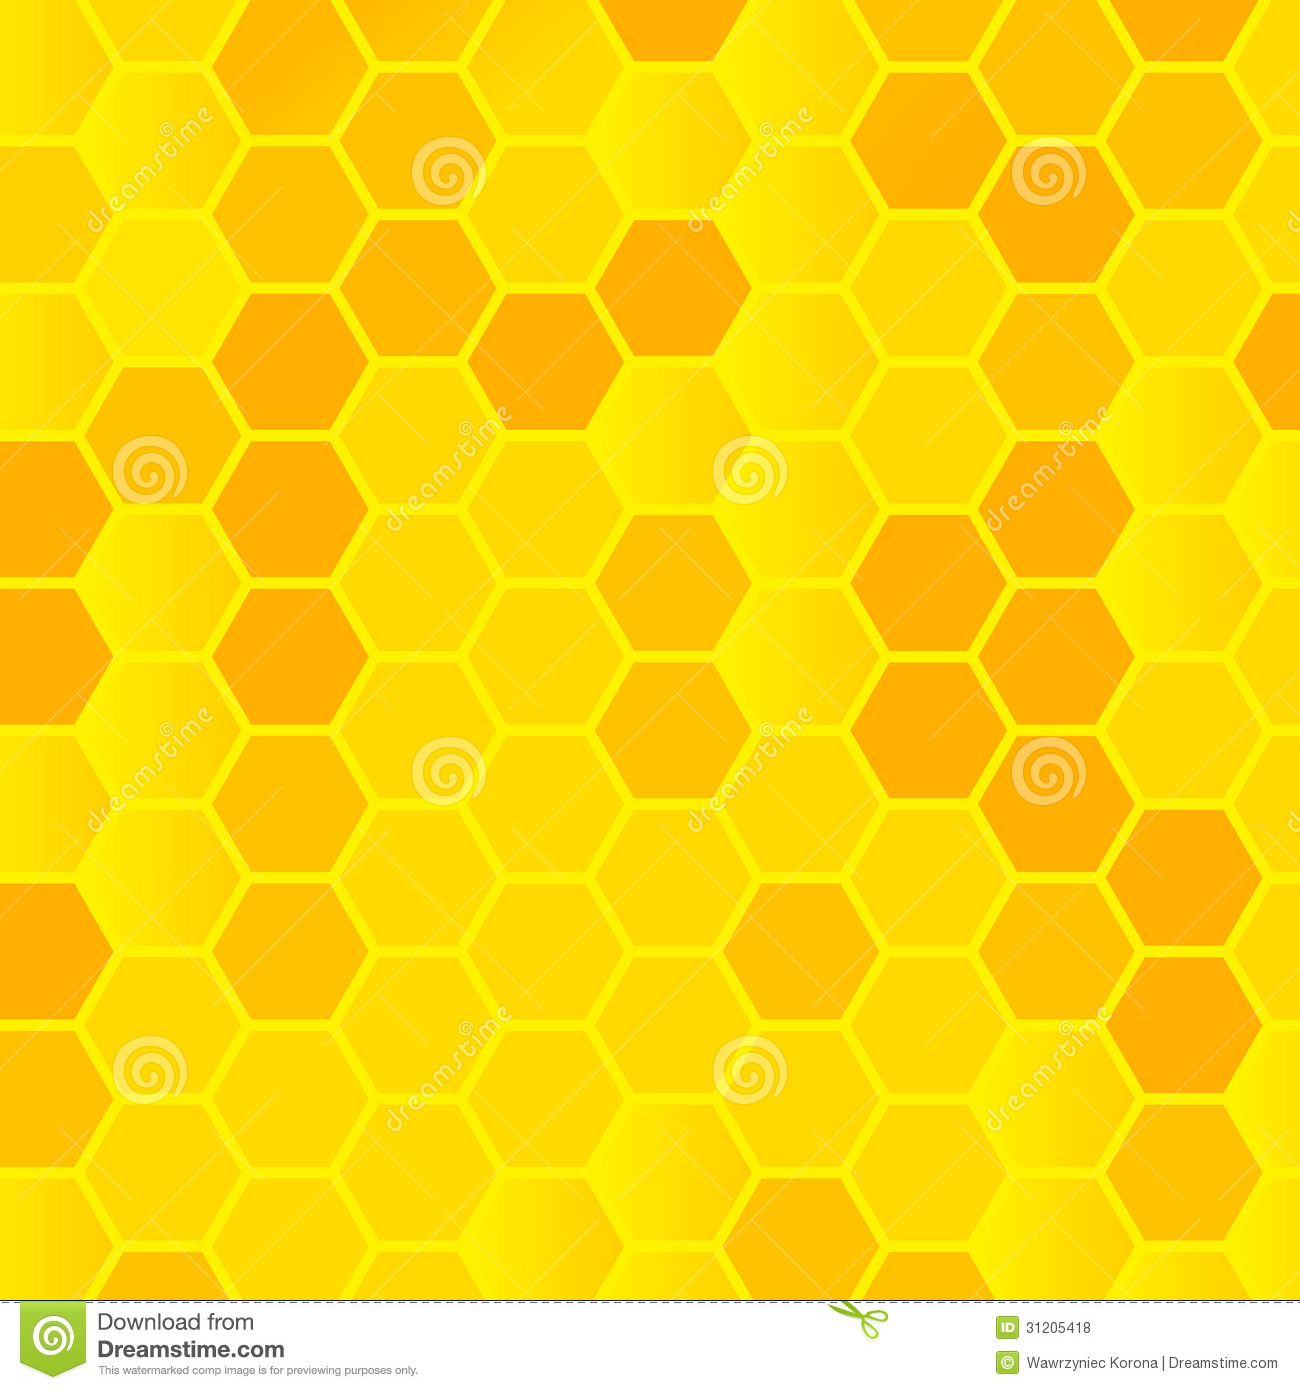 Honeycomb background stock illustration illustration of comb honeycomb background voltagebd Image collections